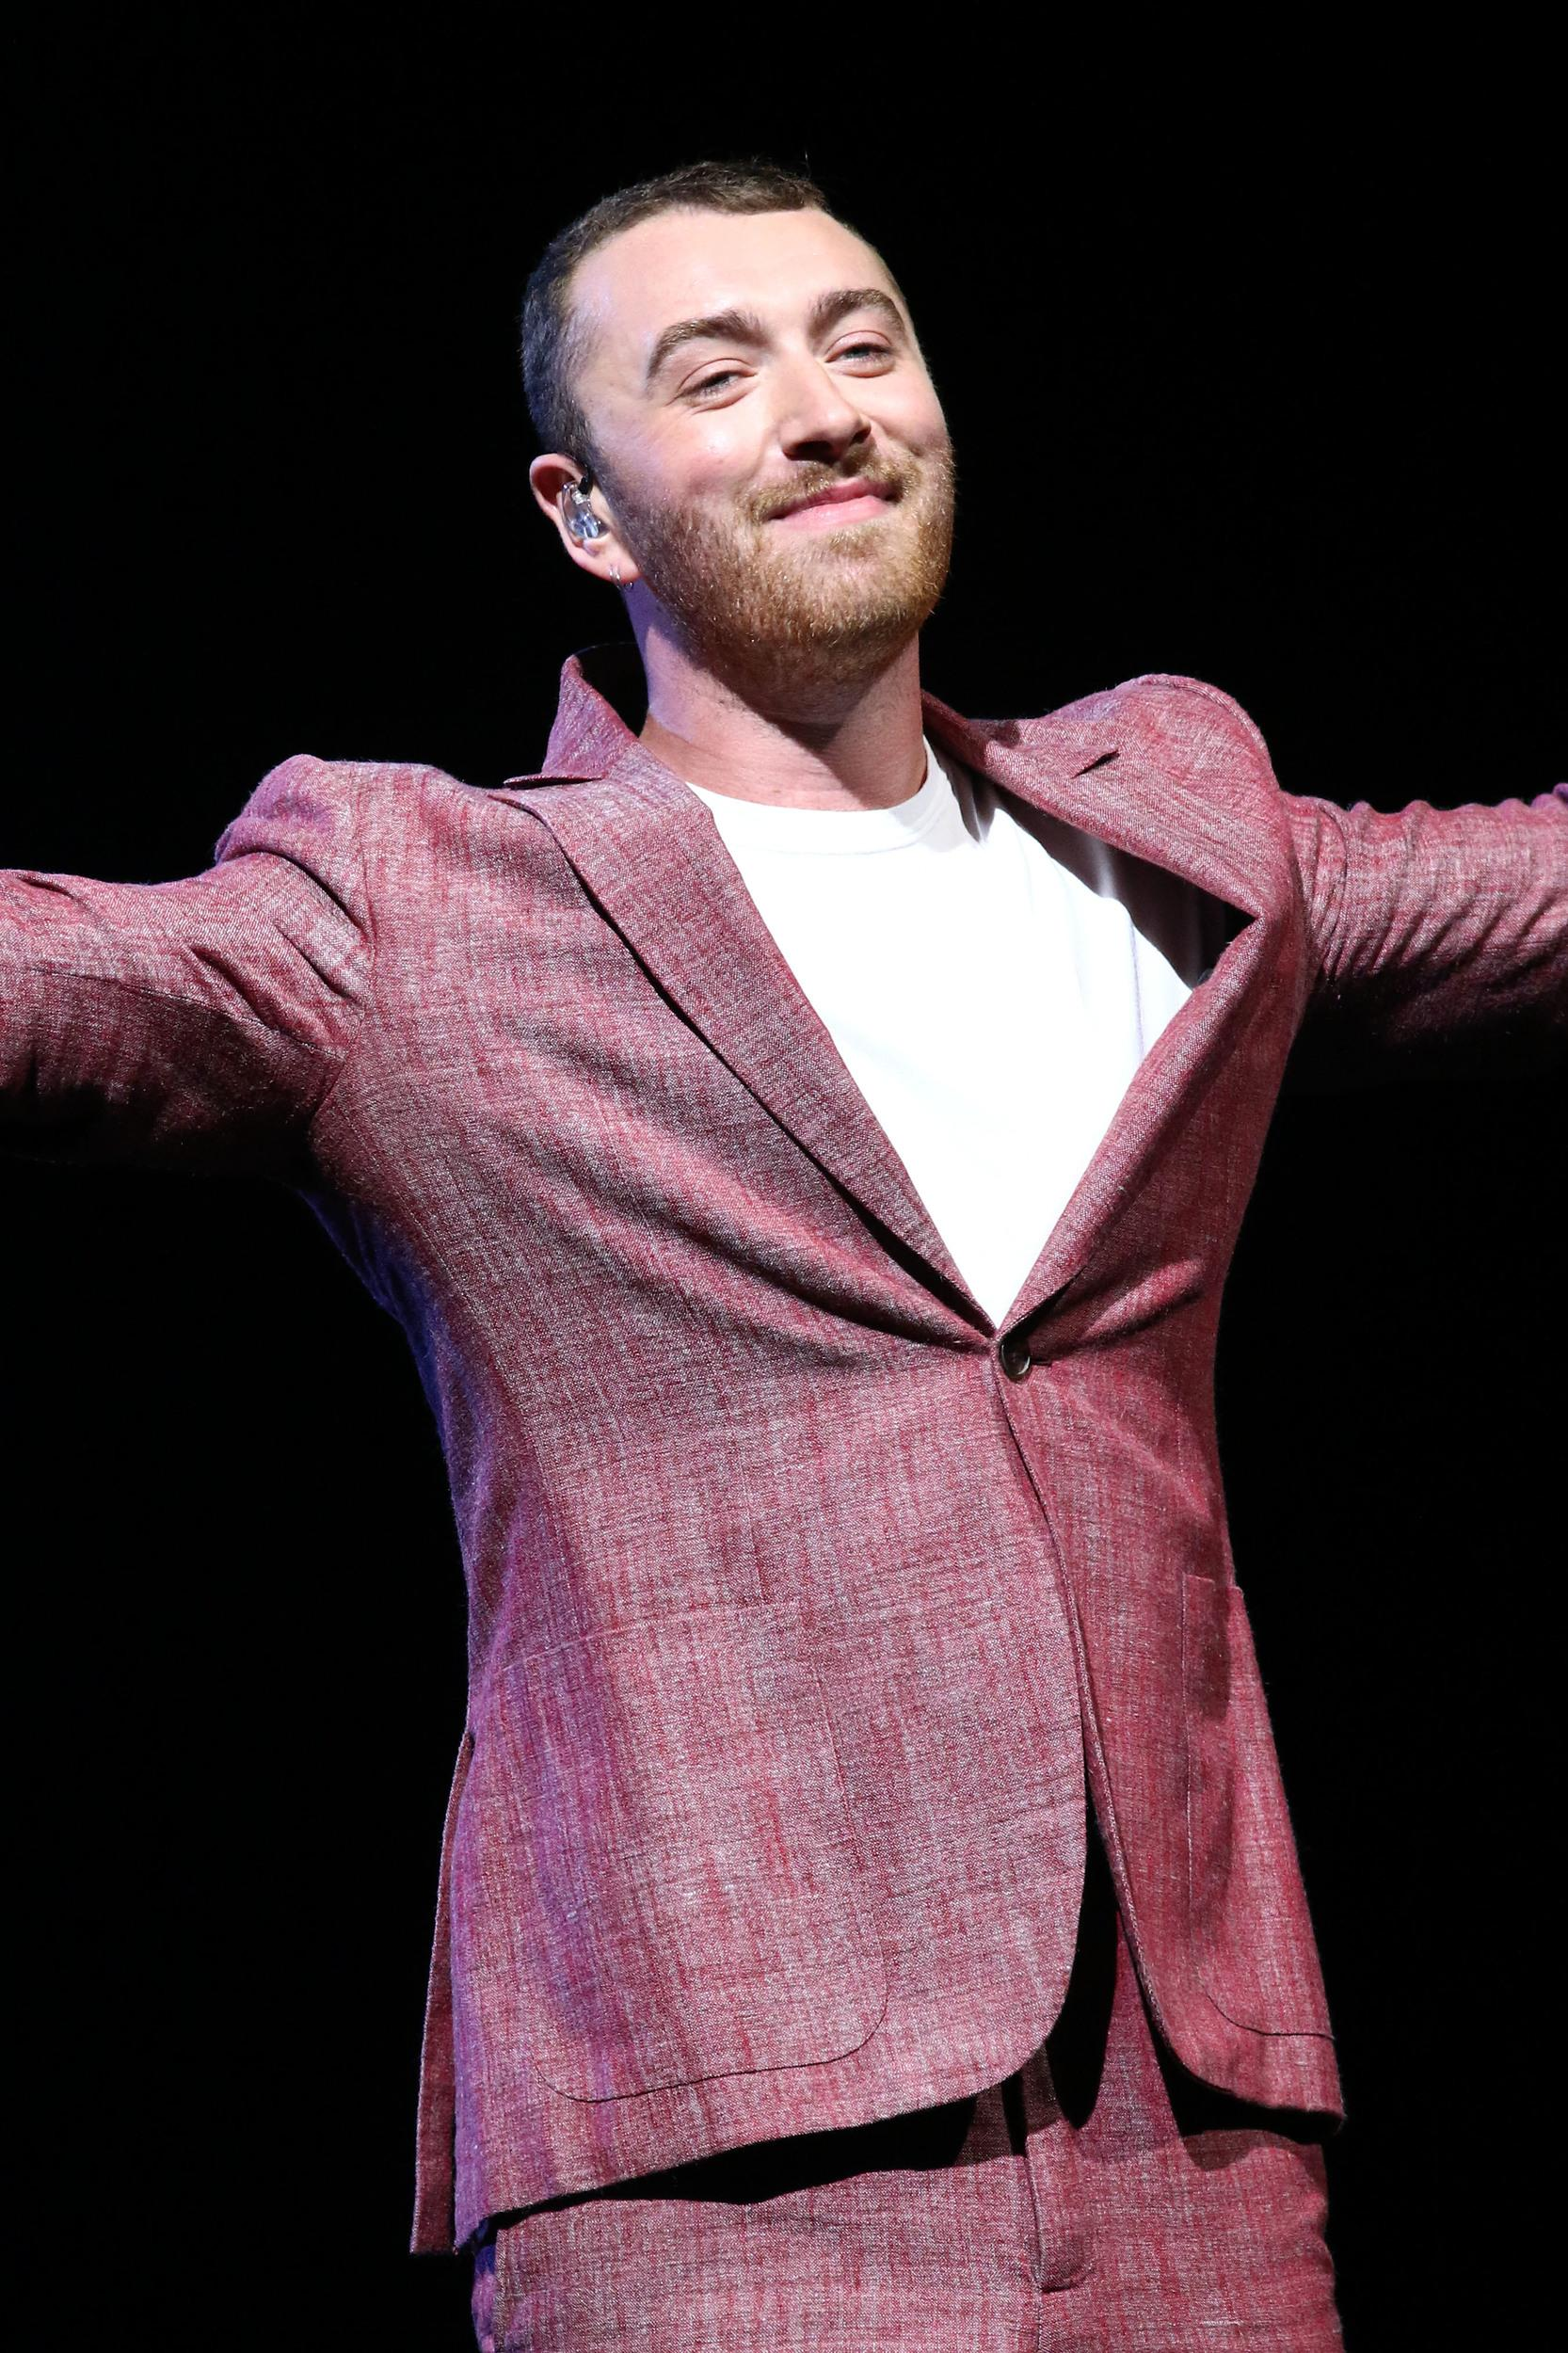 EDITORIAL USE ONLY Sam Smith performs in concert at Madison Square Garden in New York.